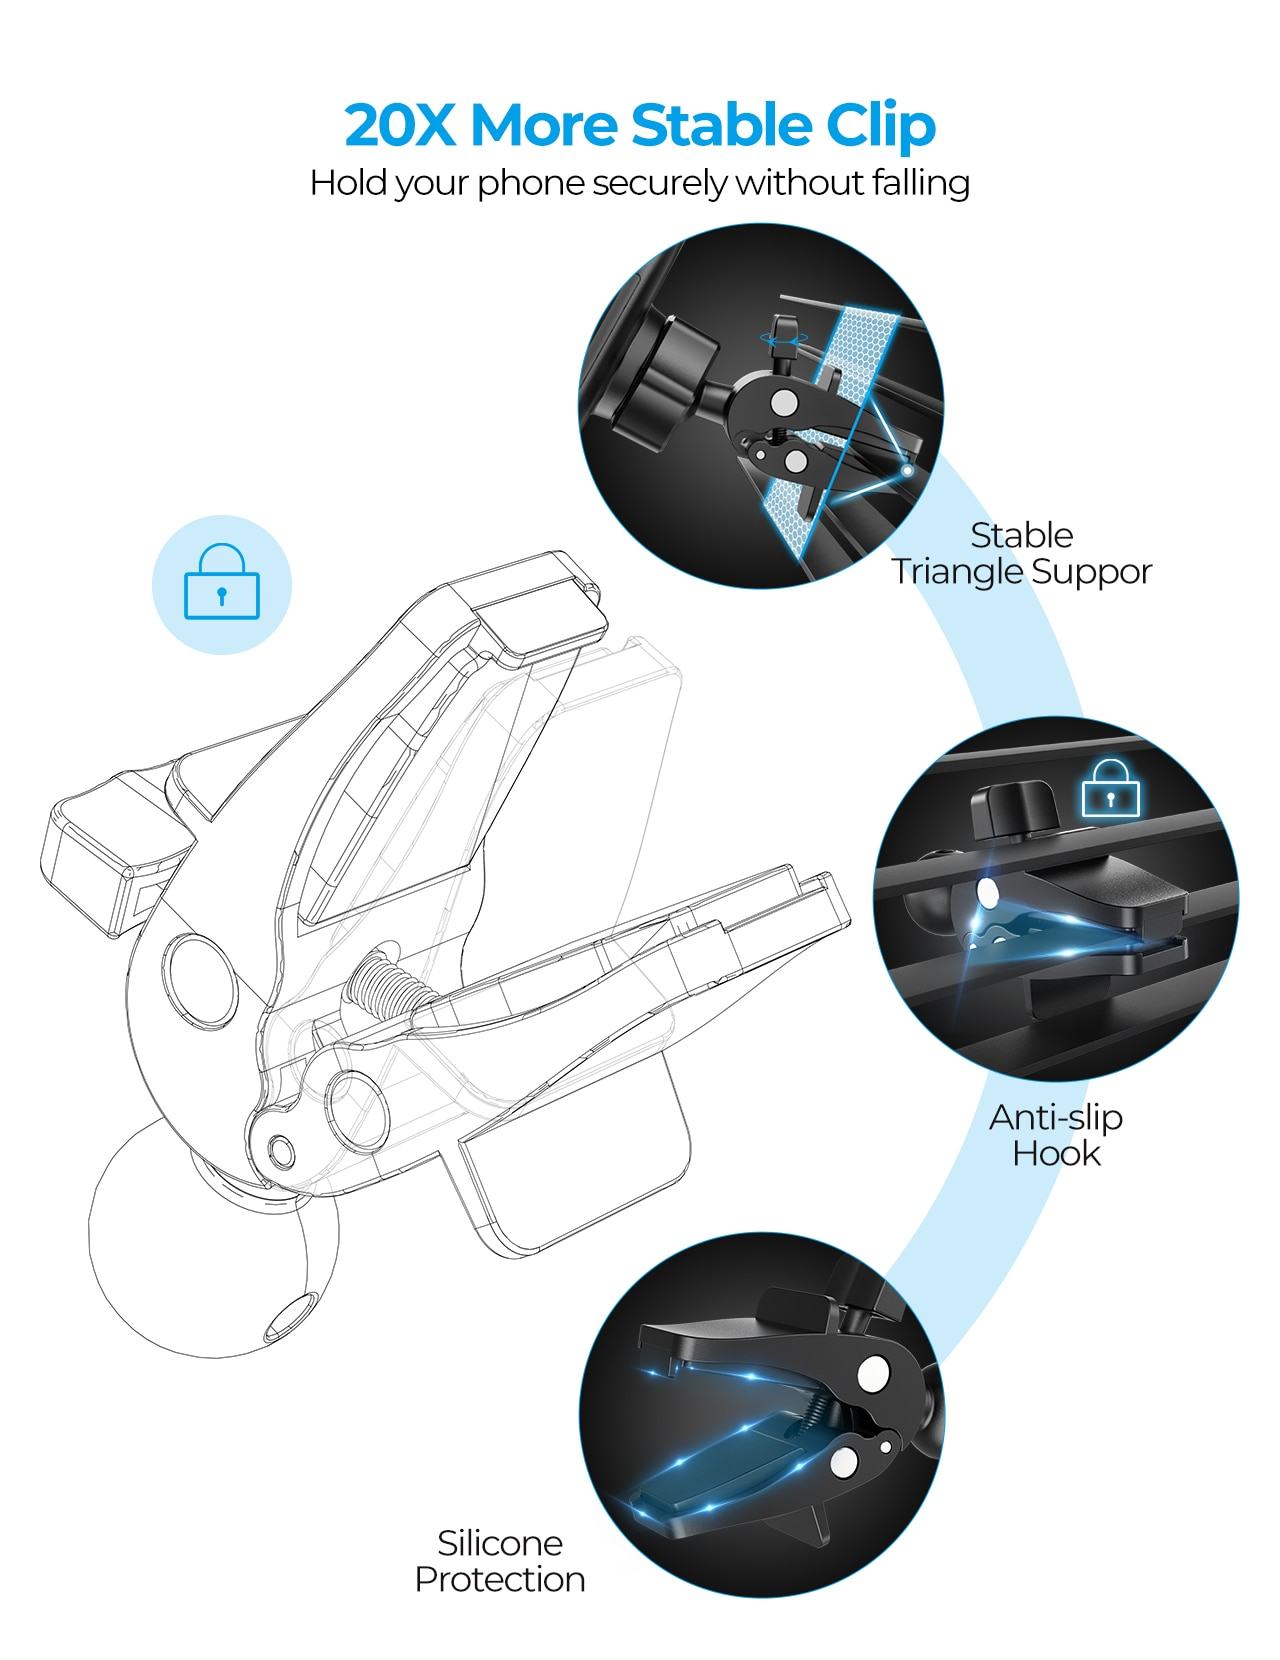 H52afff1c8ba148f3be55b6e67c547c00W - MPOW CA163 Universal Air Vent Car Phone Mount with Stable Clip and Dual Release Button Compatible with iPhone 12 11 Pro and More